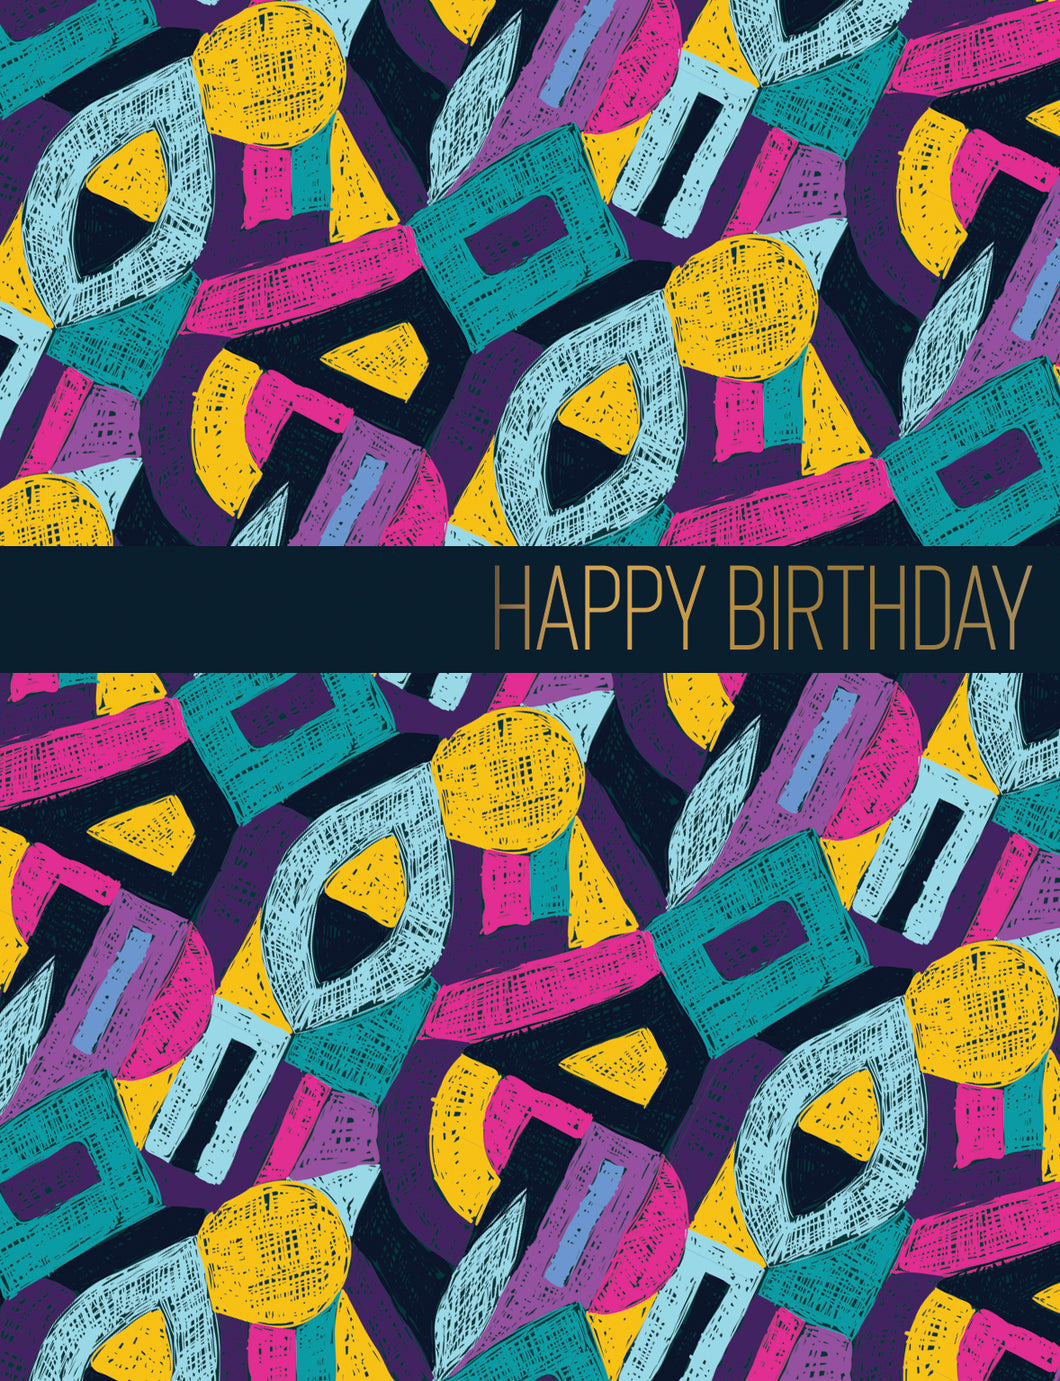 Birthday Card - Celebrate With Adult Beverages